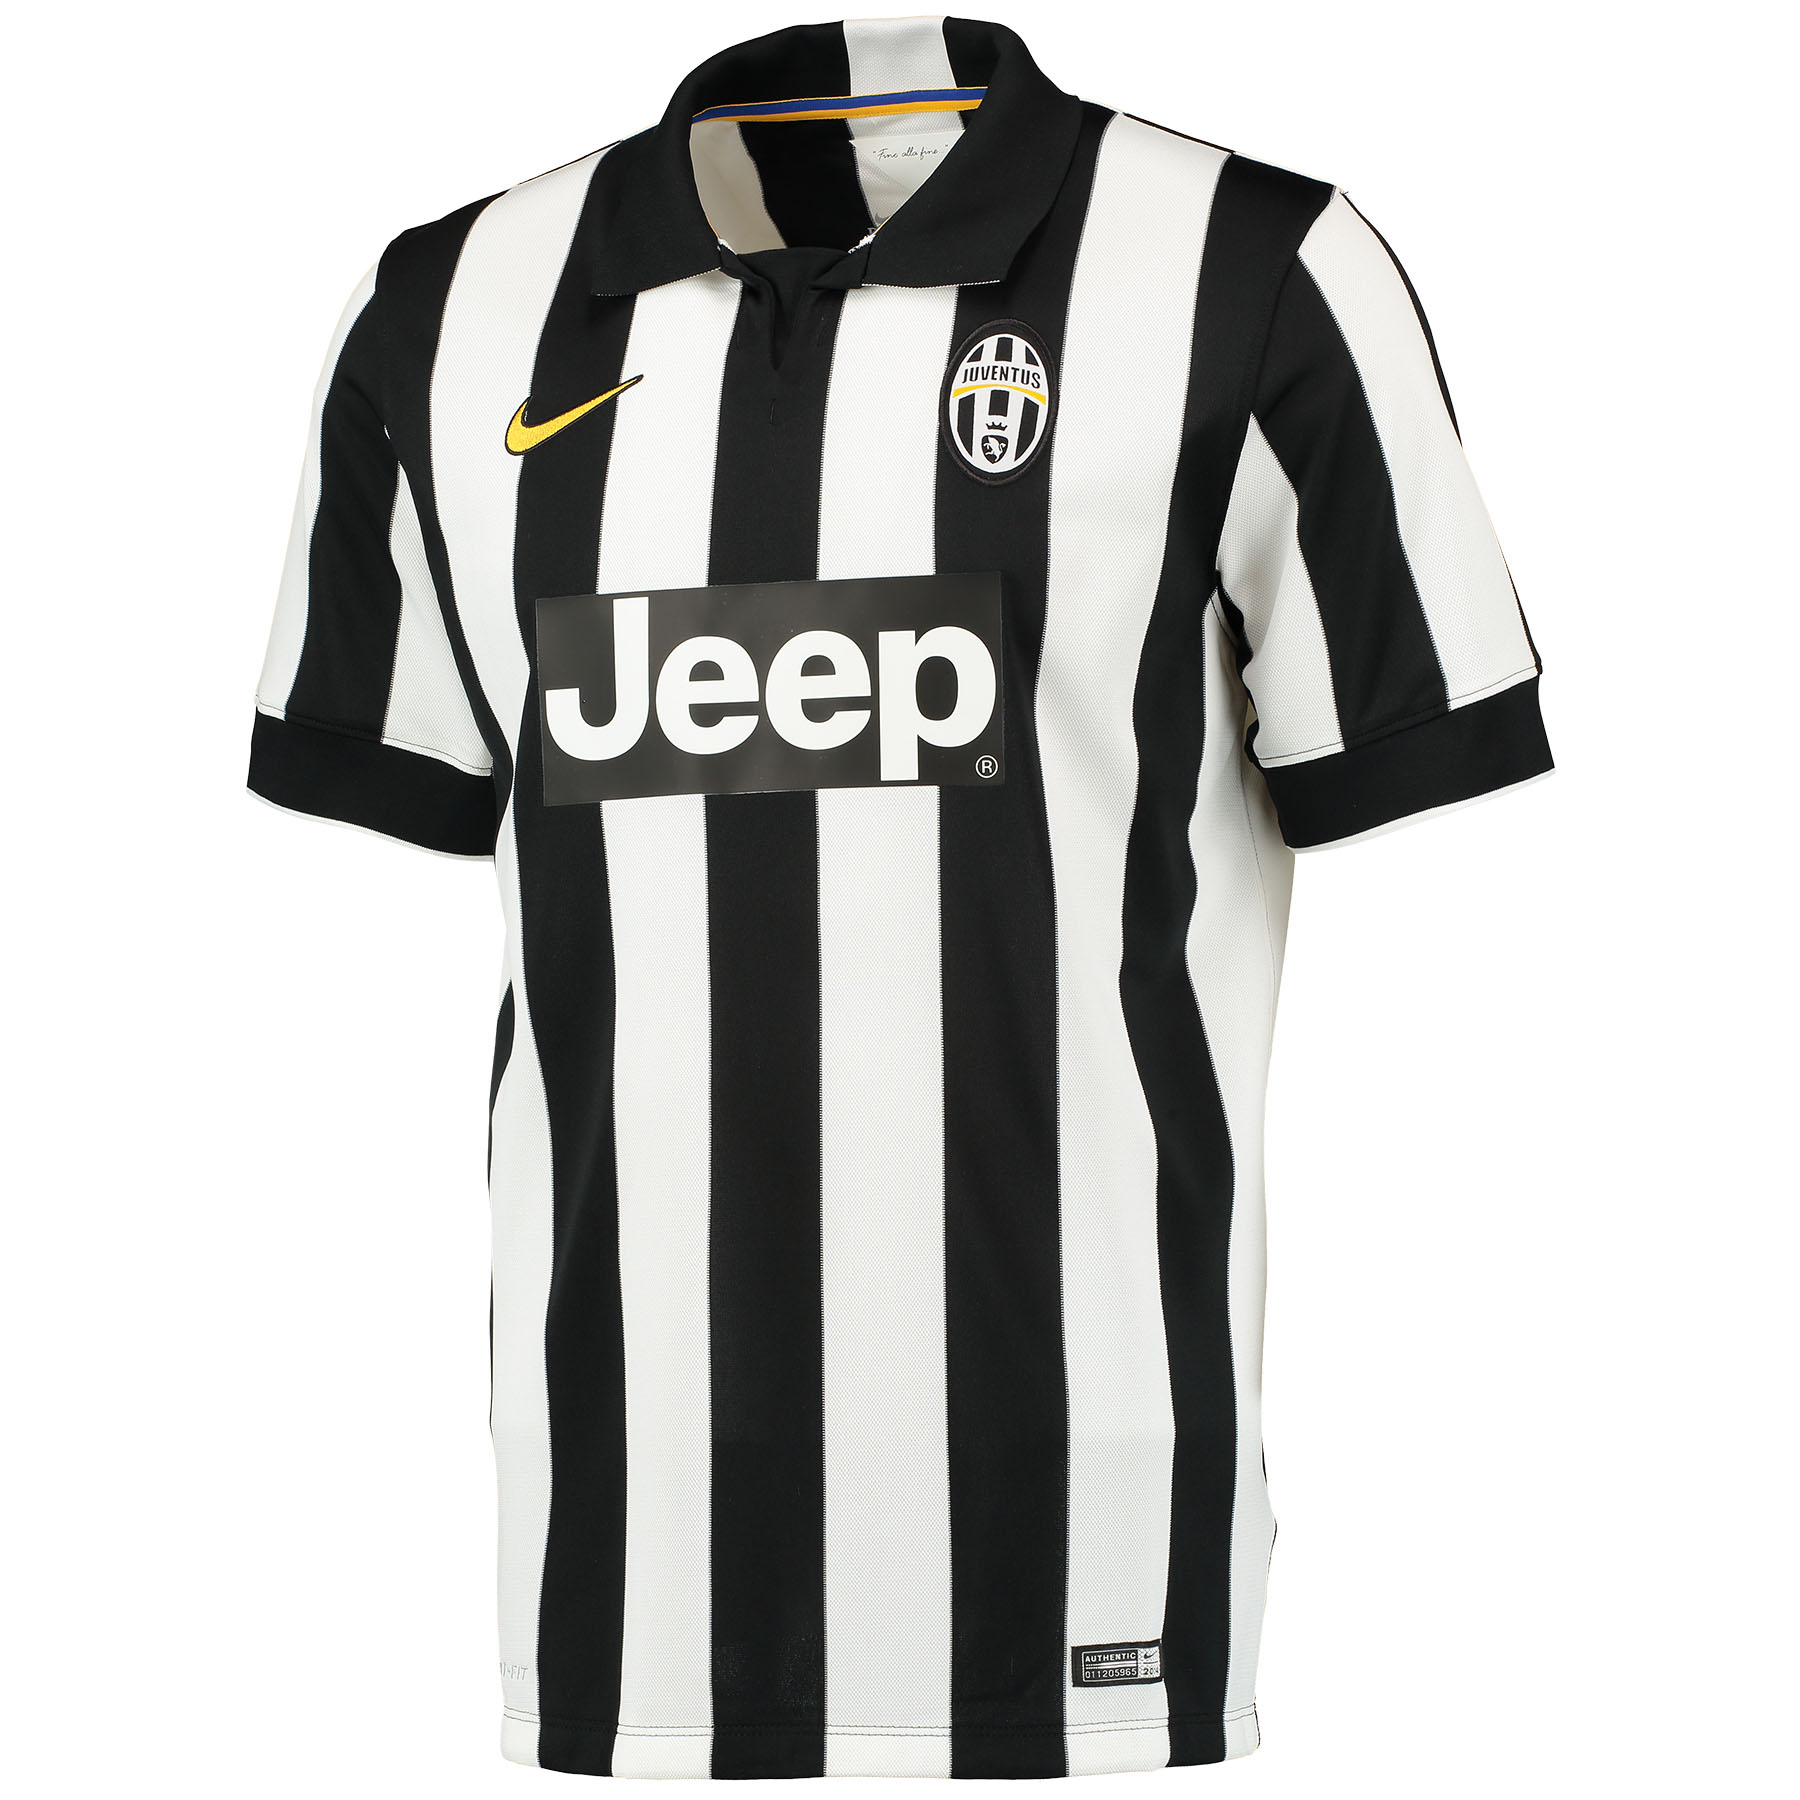 Juventus Home Shirt 2014/15 White